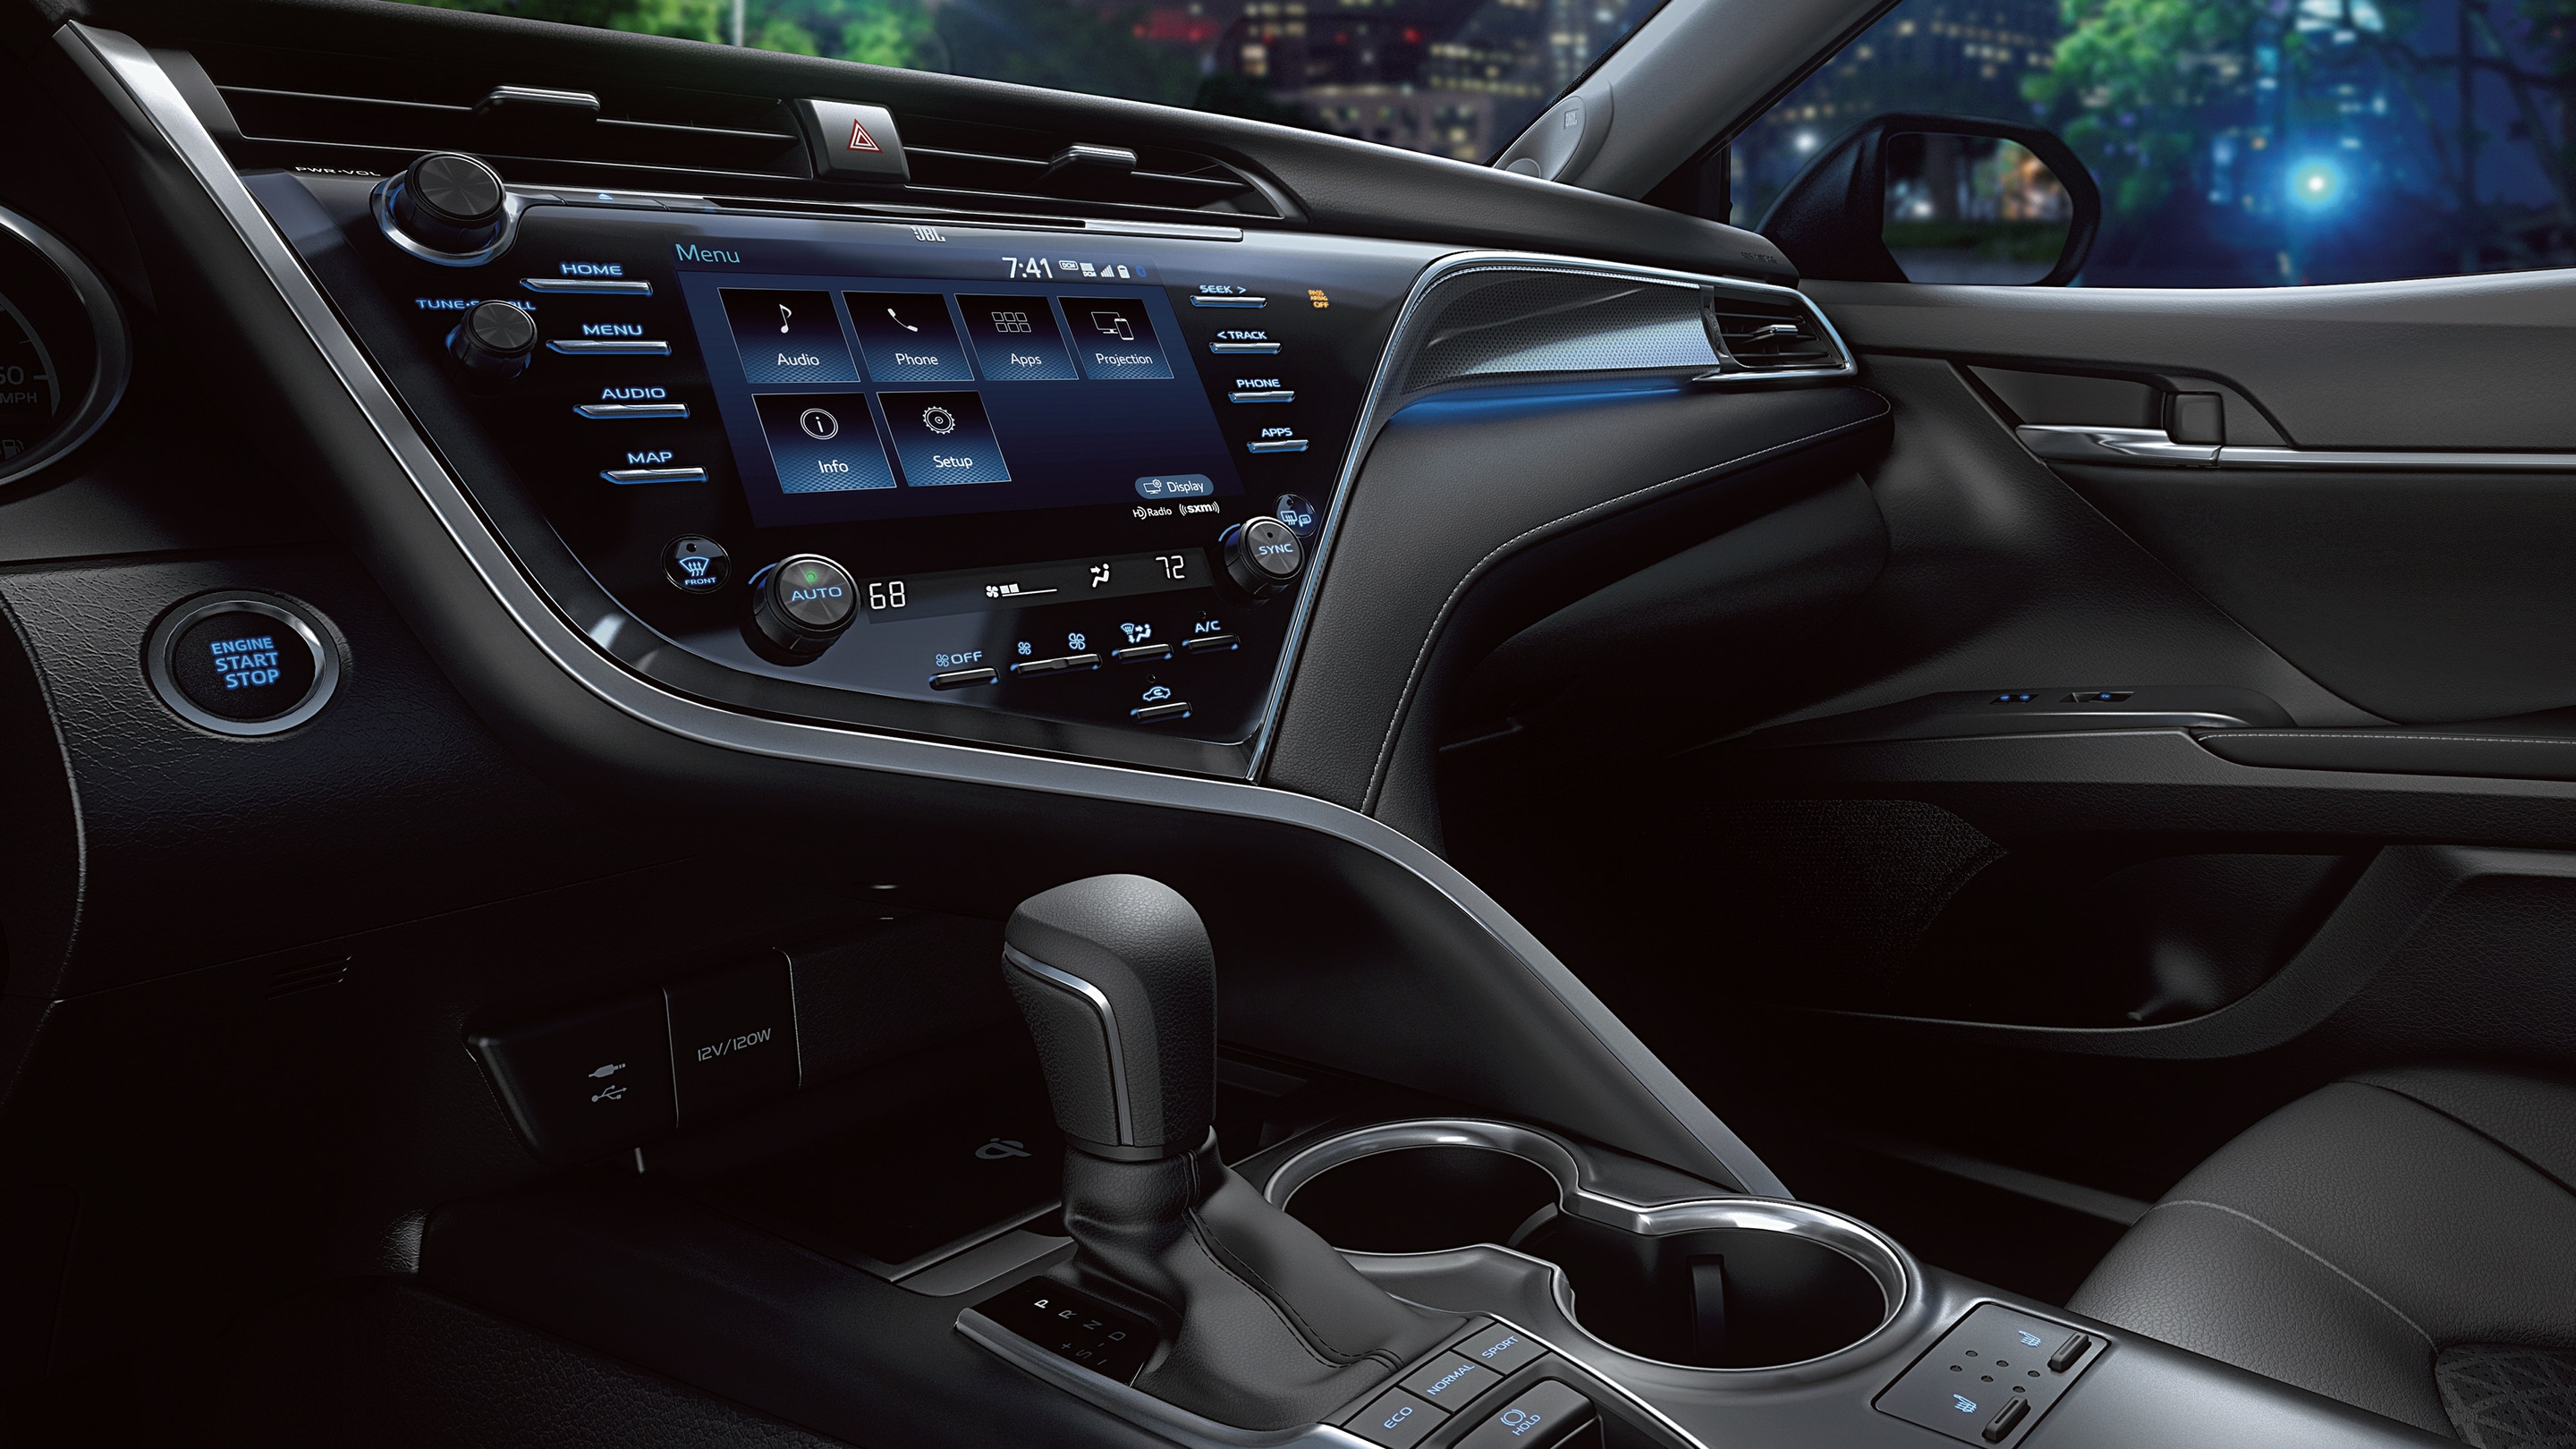 Up Front in the 2020 Toyota Camry